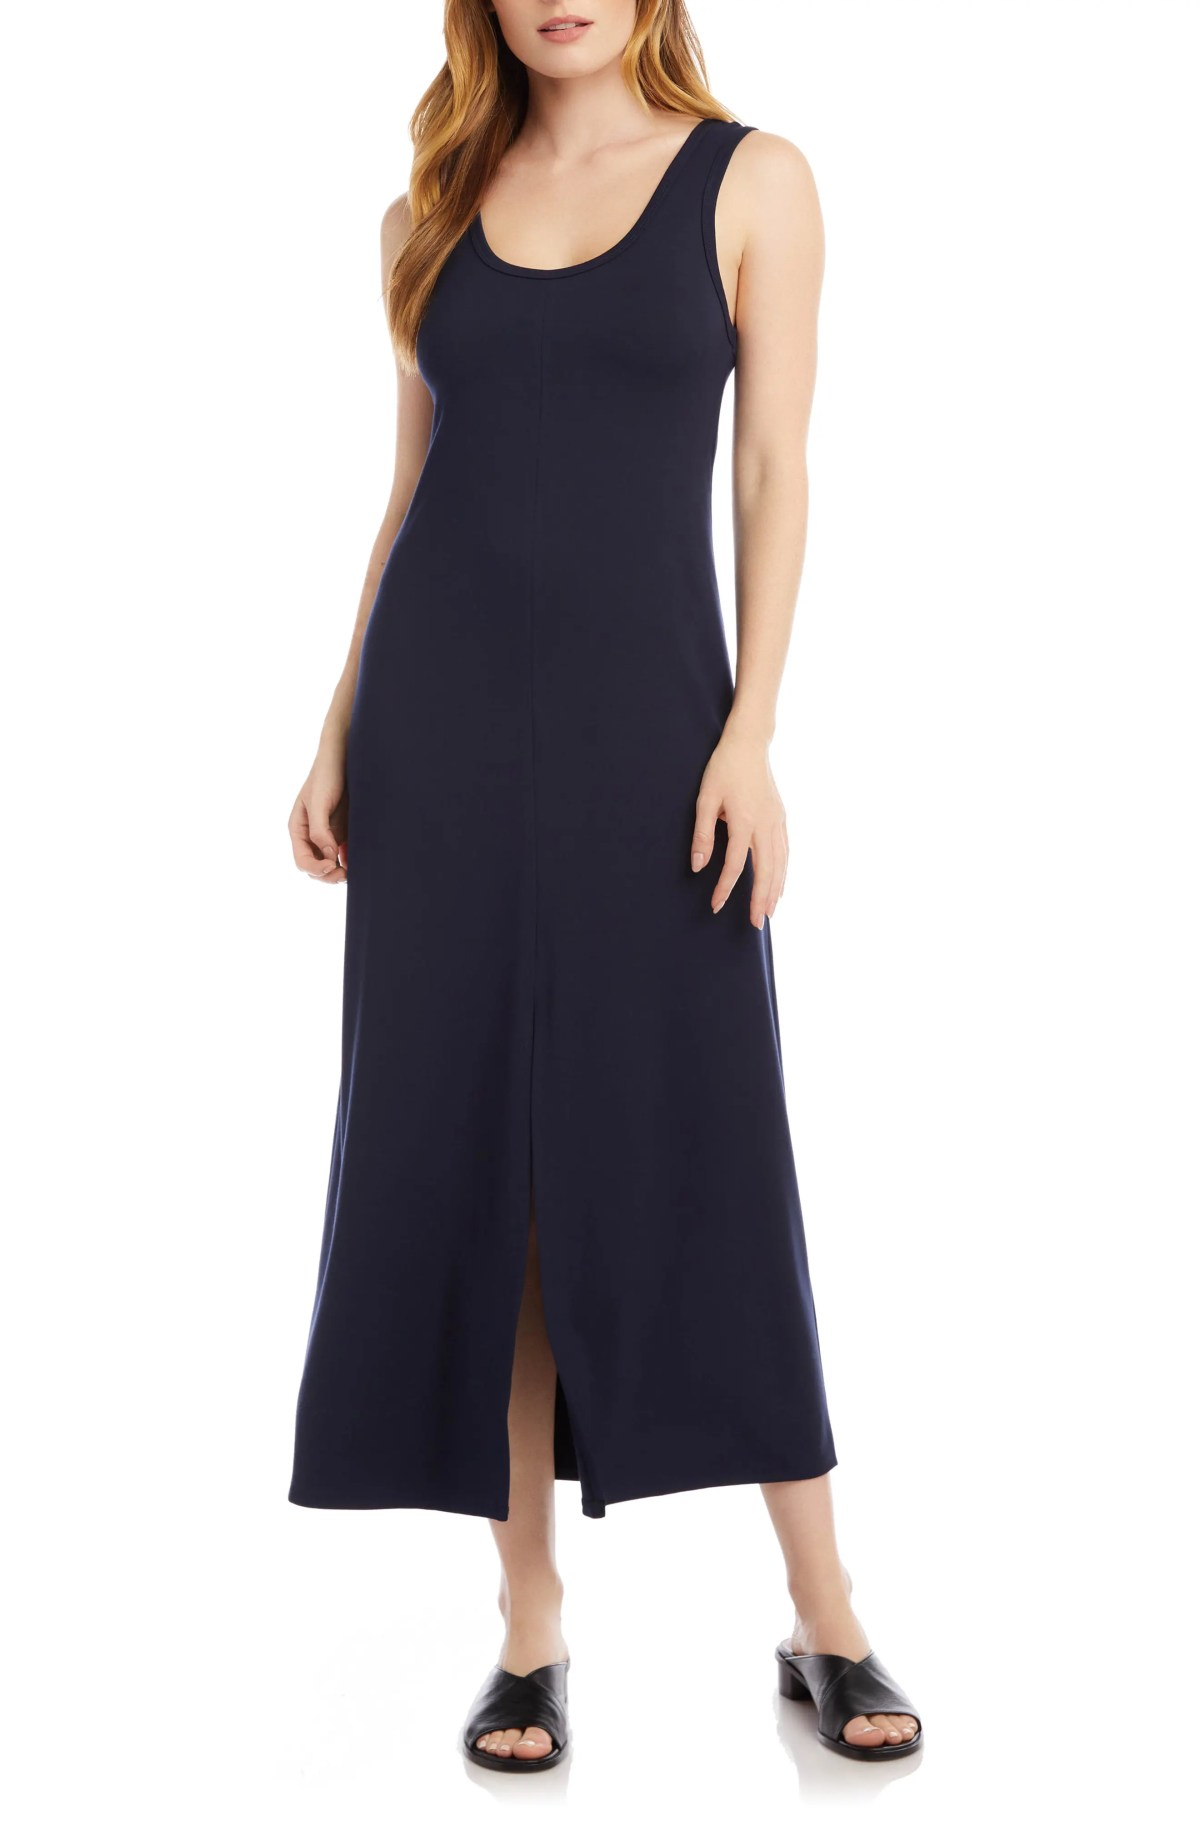 KAREN KANE Midi Tank Dress, Main, color, NAVY